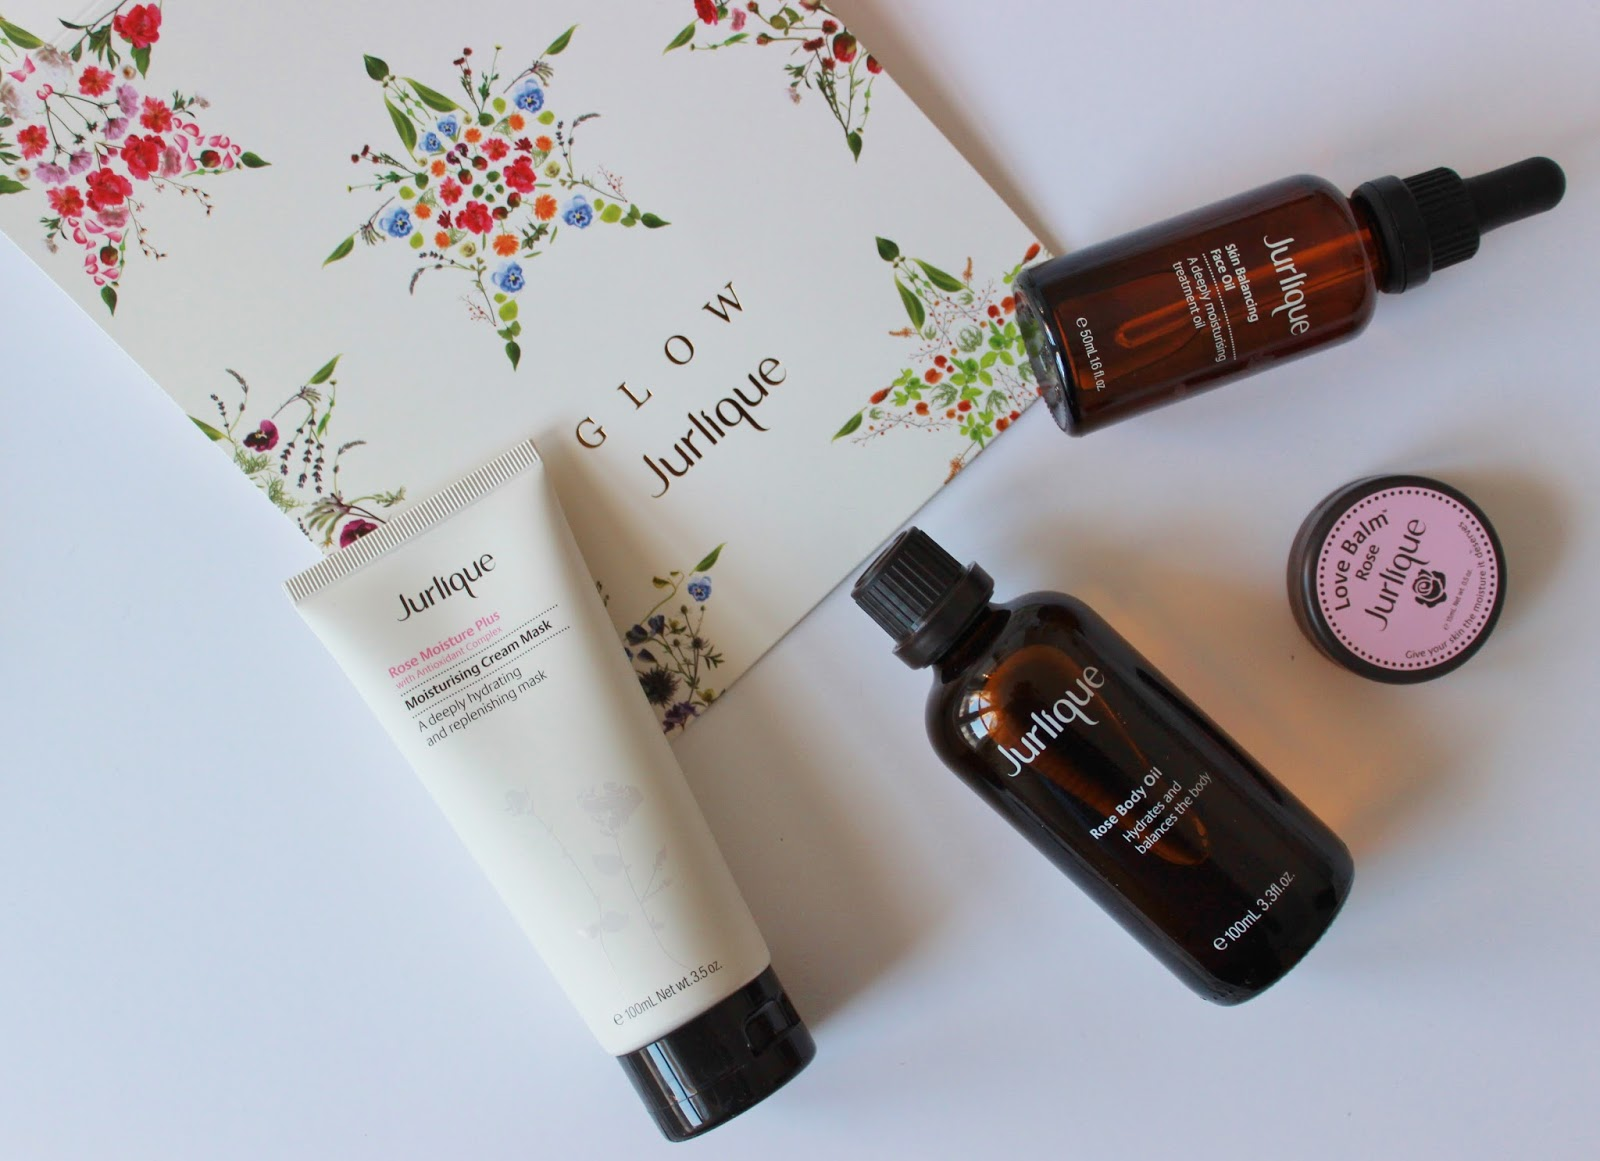 Jurlique 12 days of glow campaign rose skincare and body care products